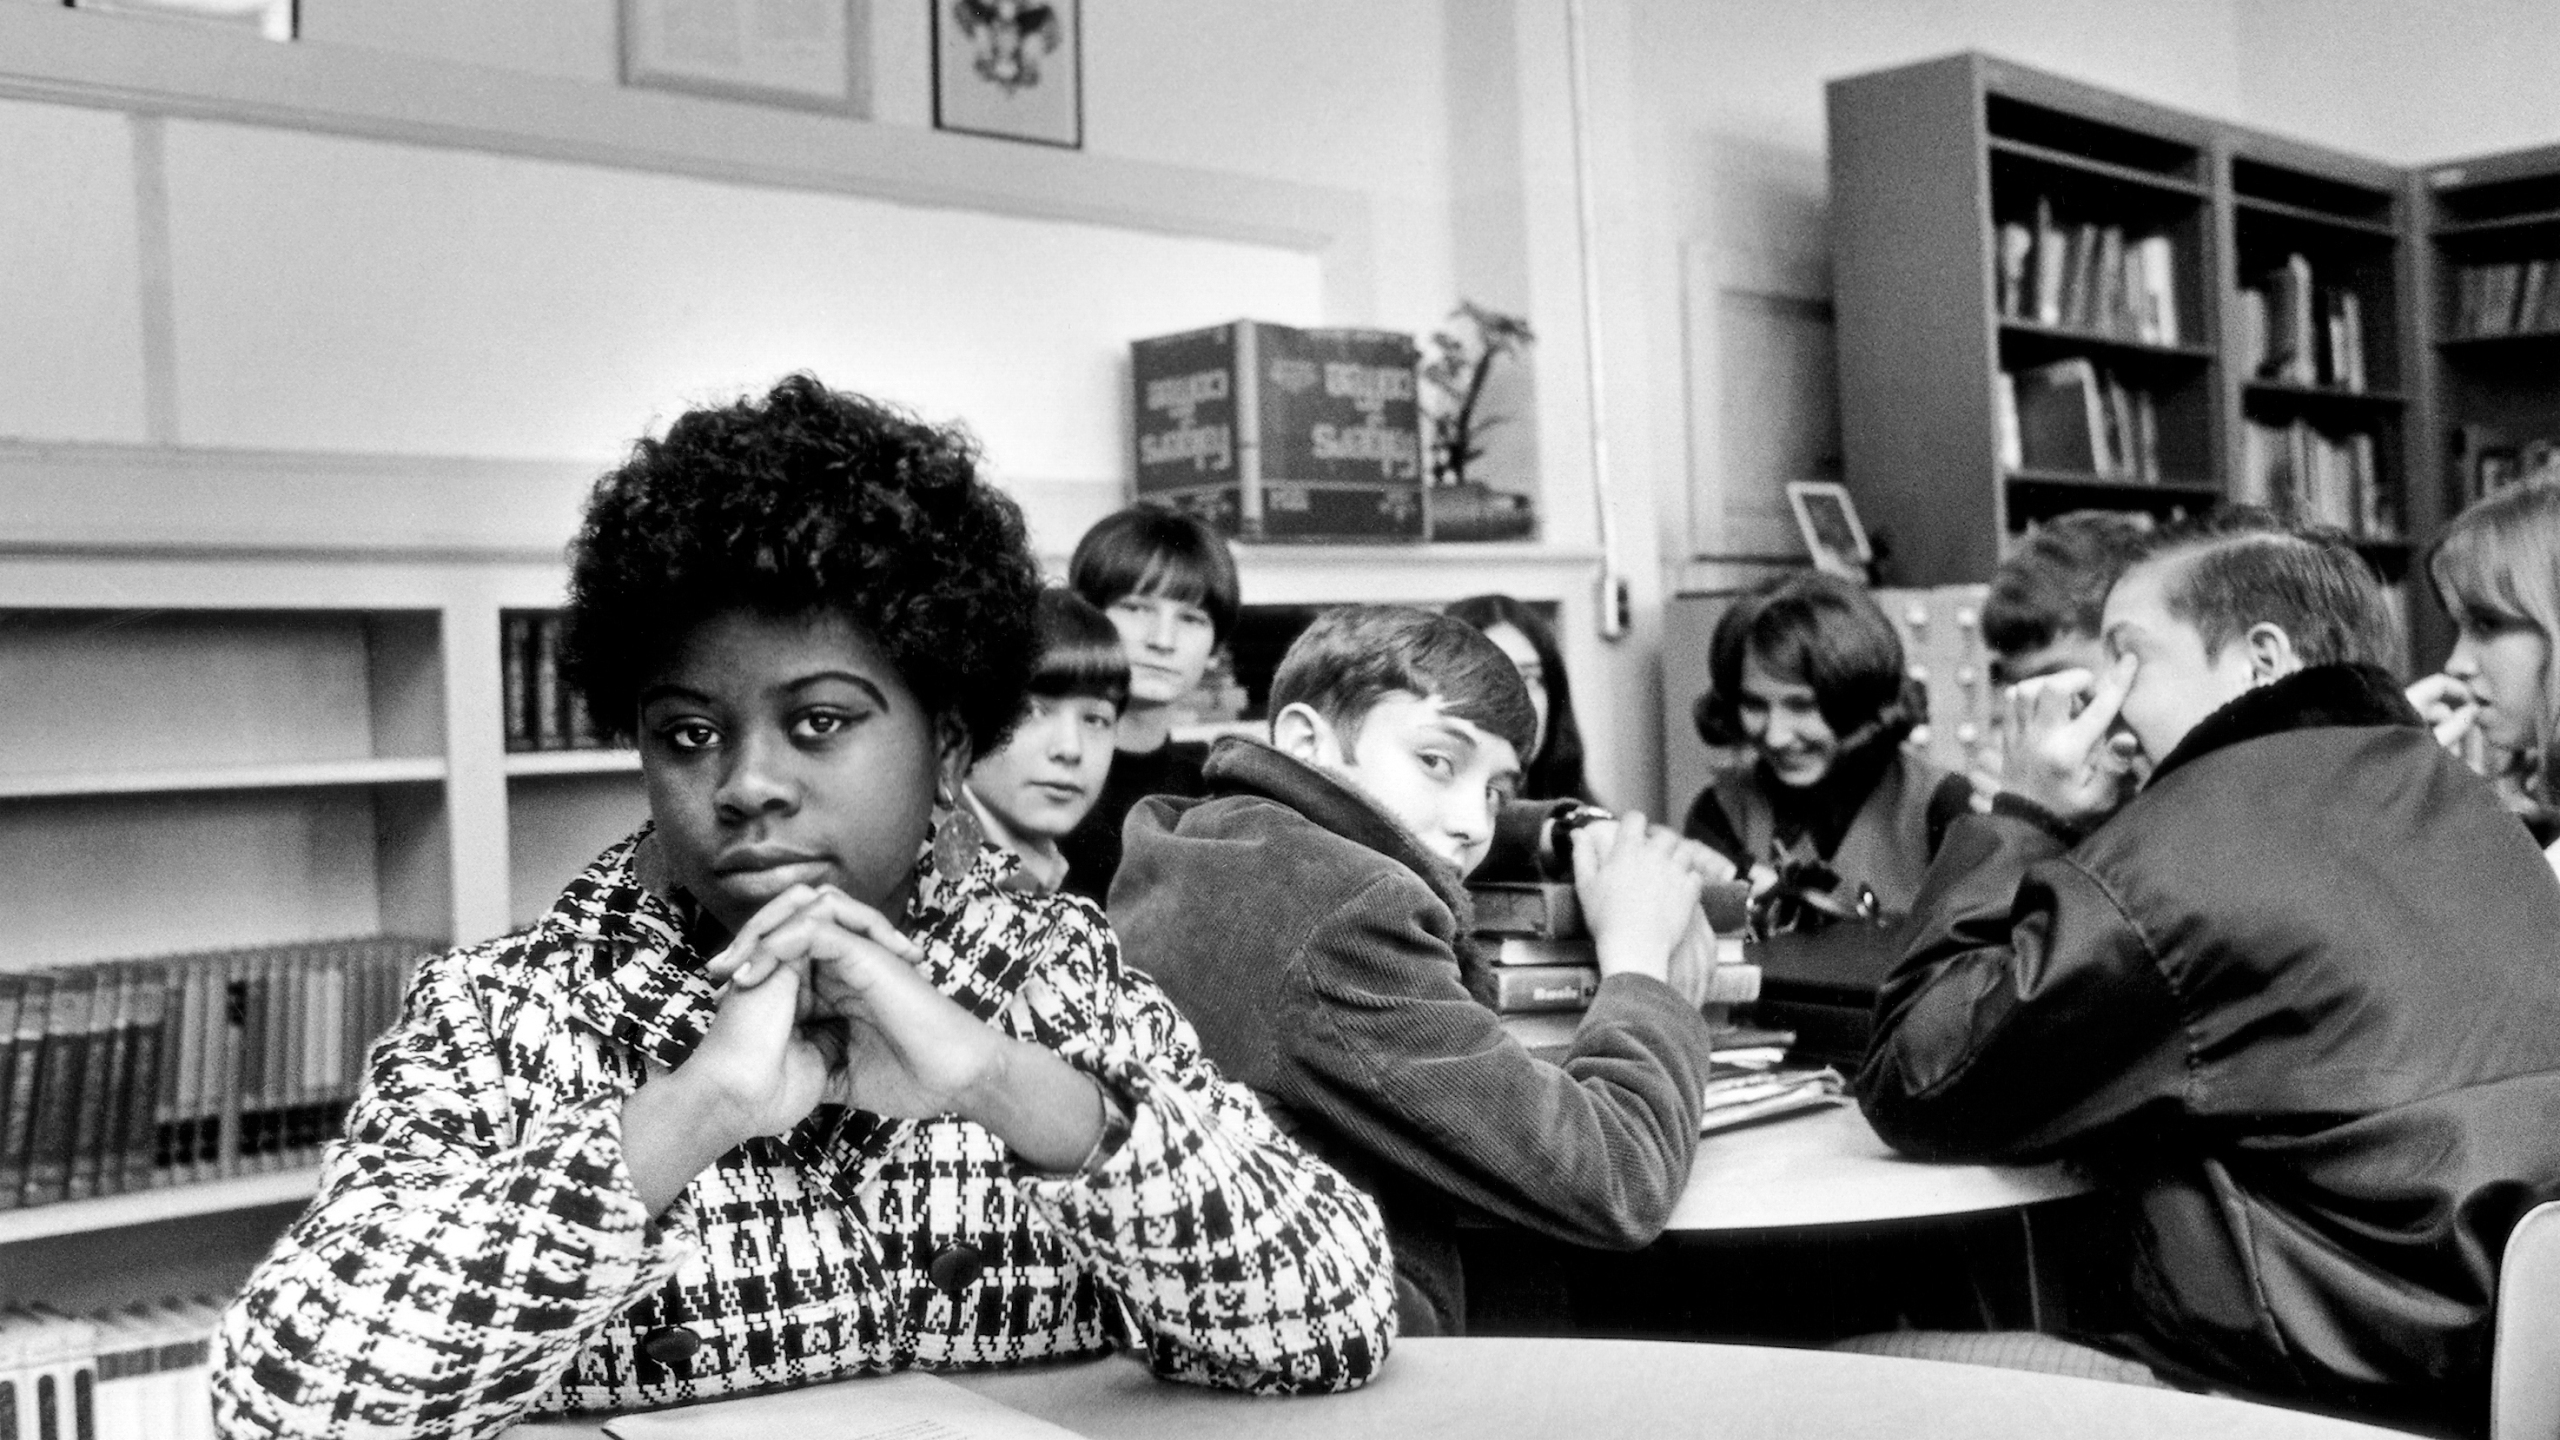 CORRECTION_Obit_Linda_Brown_63289-159532.jpg03427893